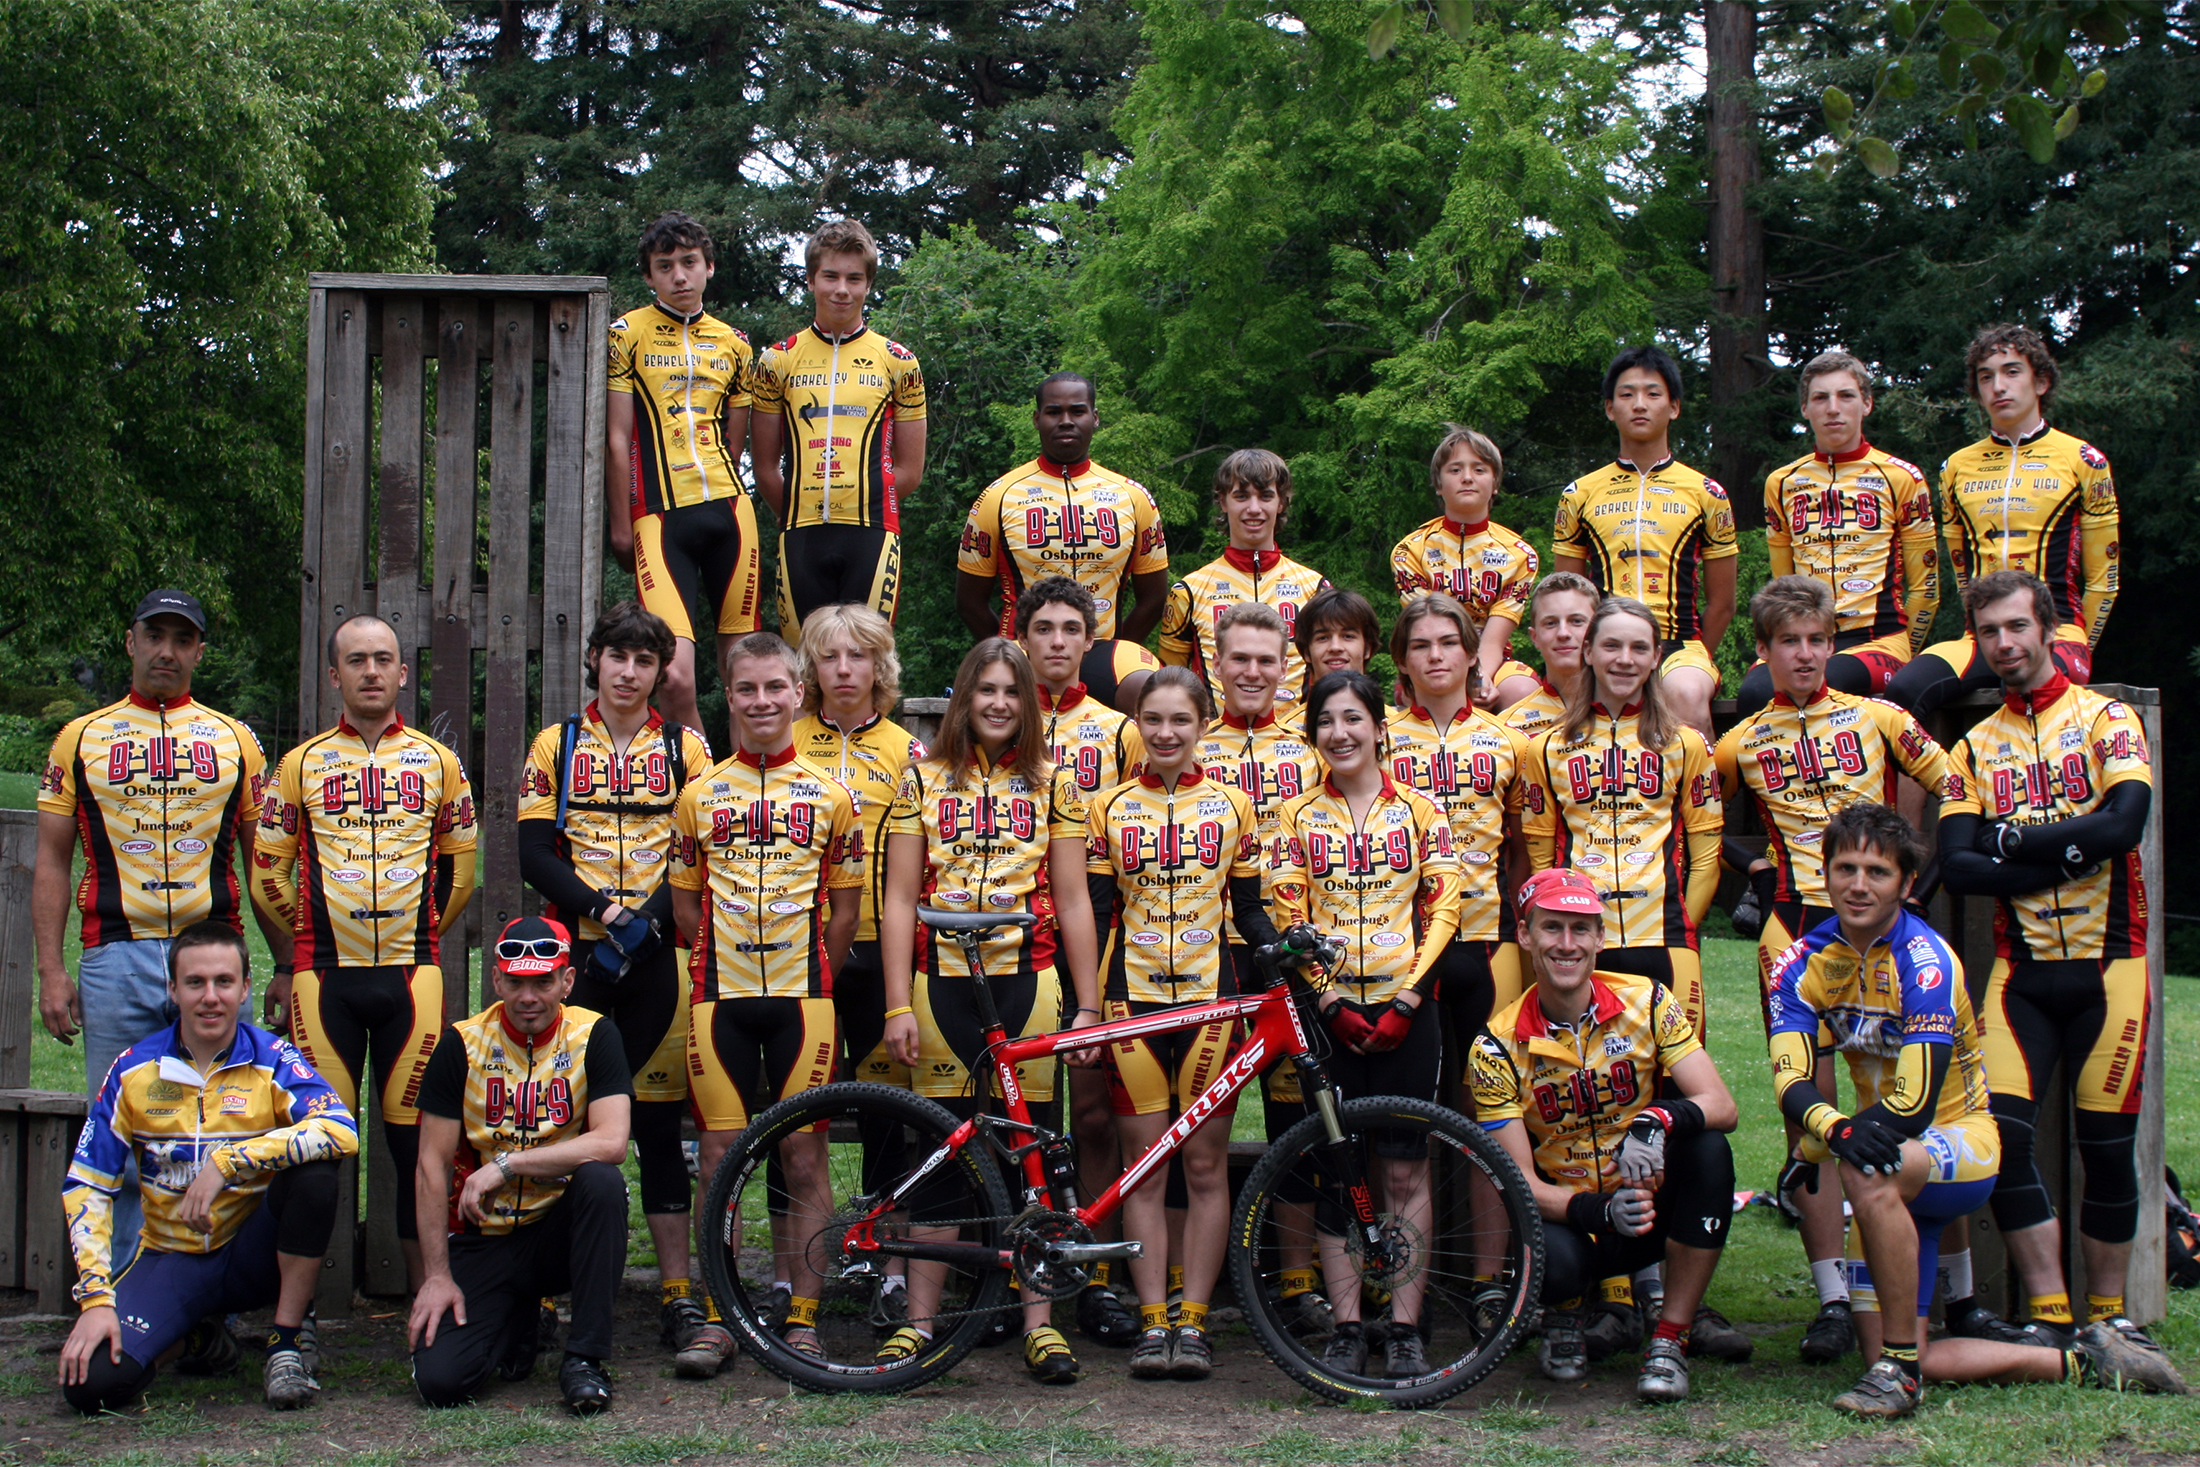 Berkeley High School Mountain Bike Team